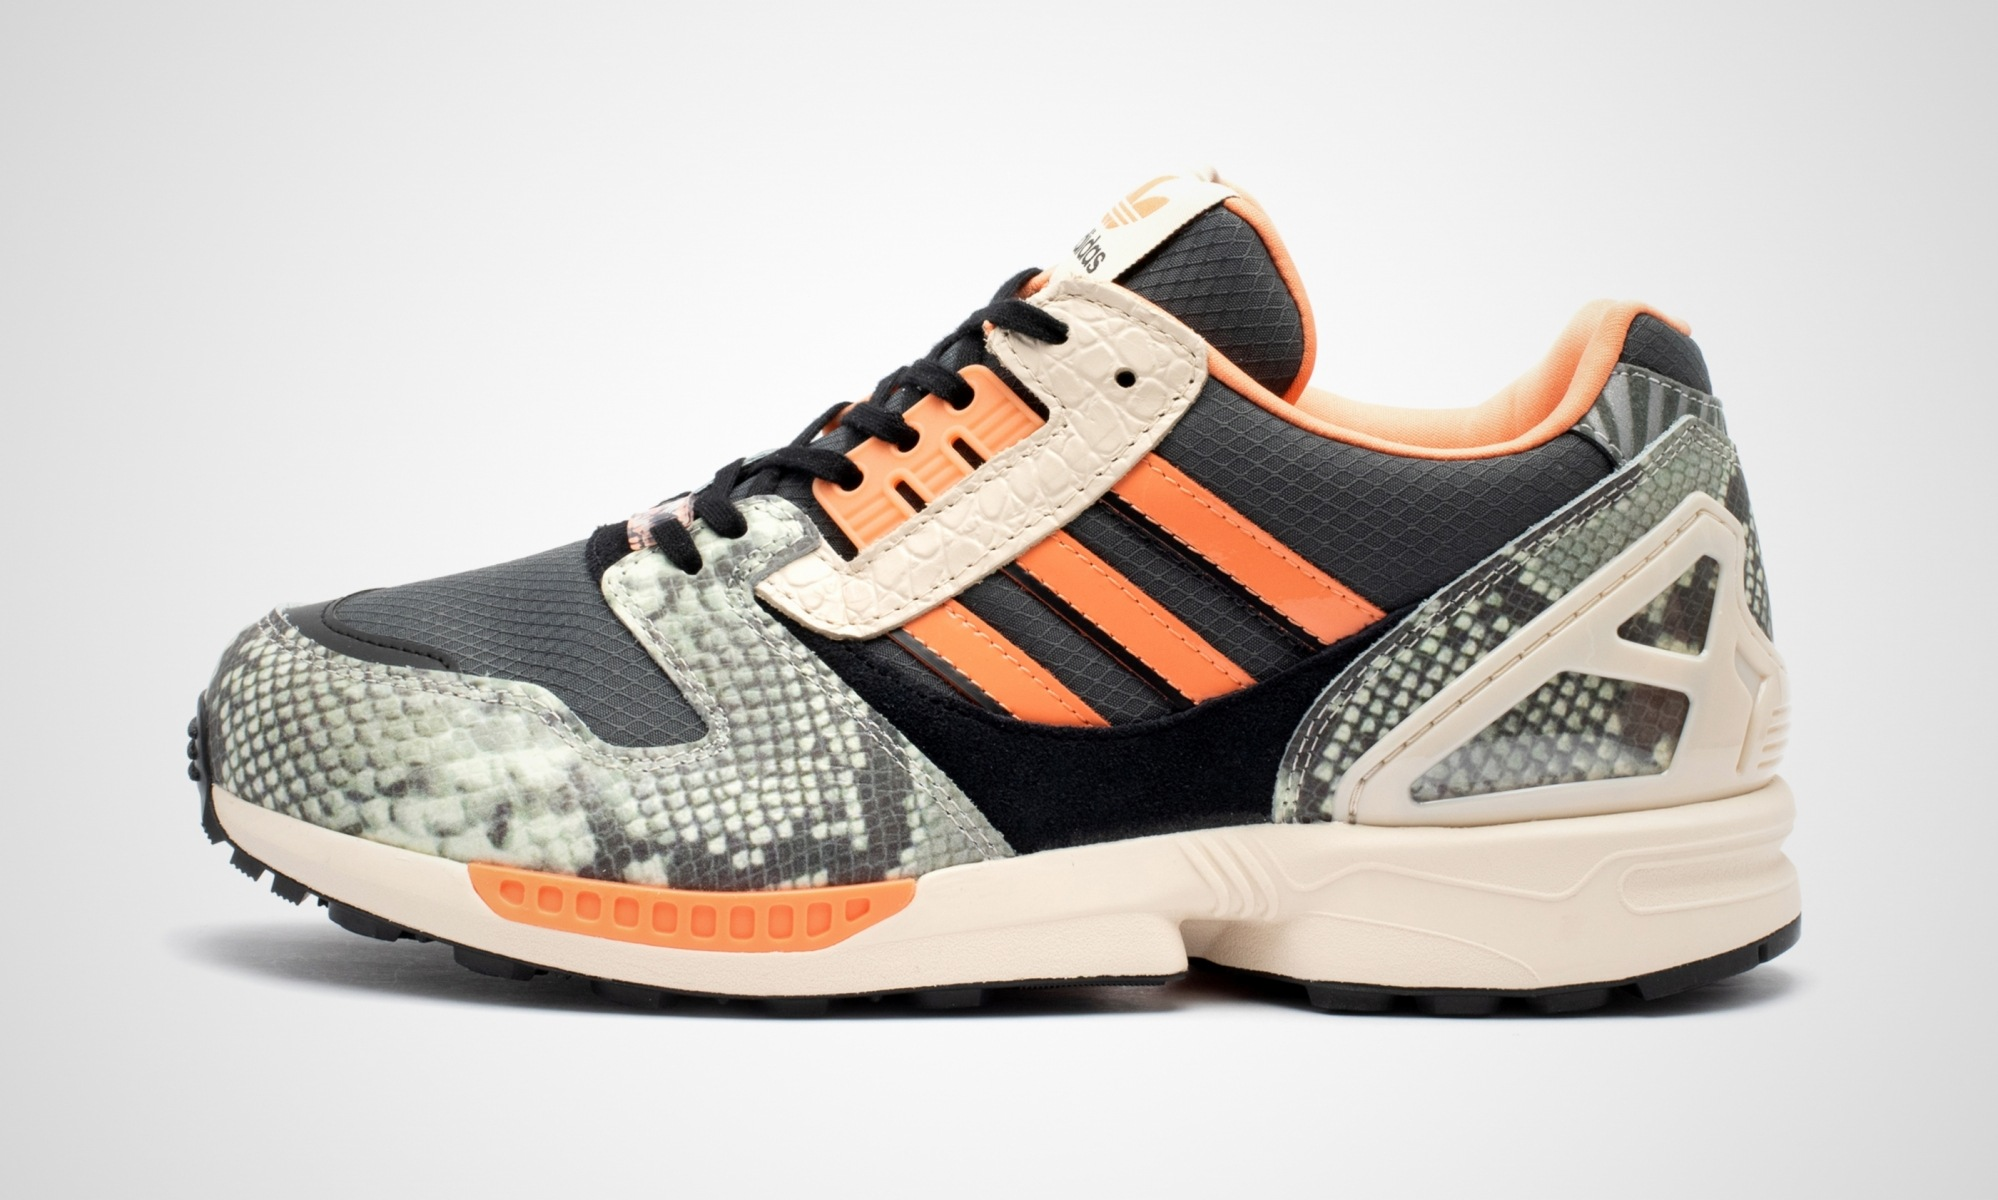 adidas ZX 8000 Lethal Nights Pack Black